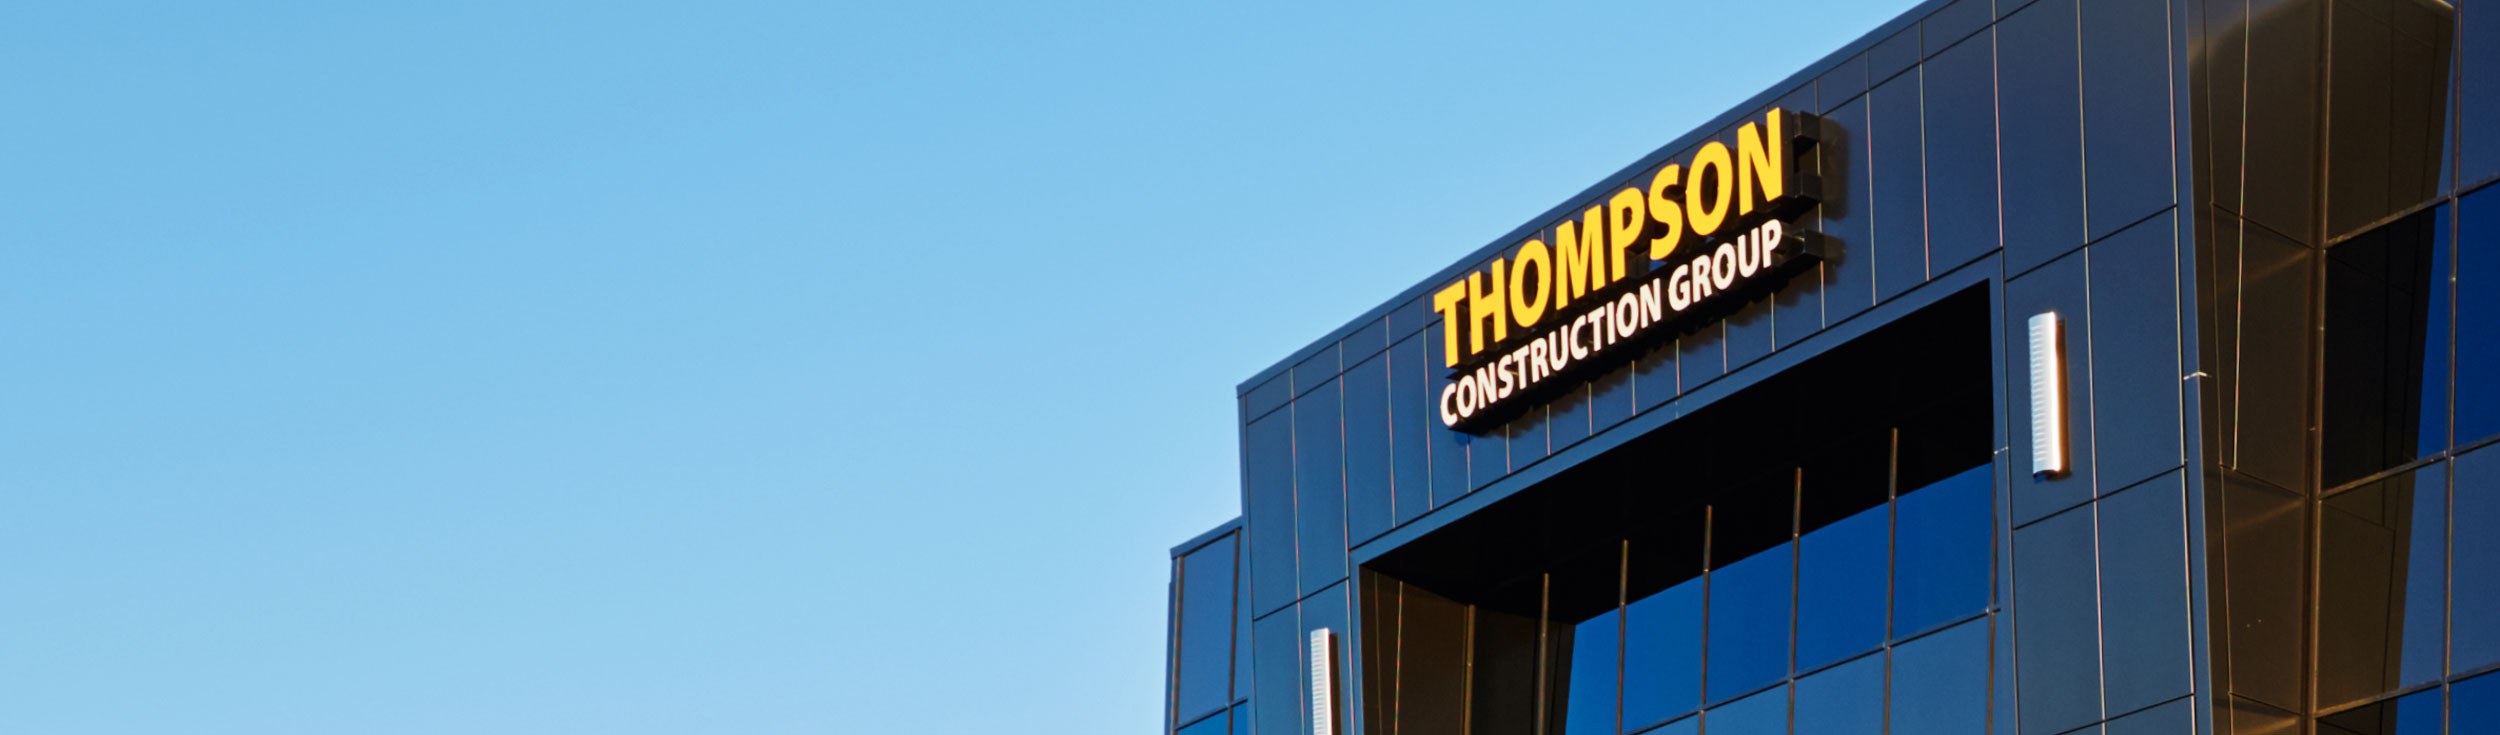 Thompson Construction Group